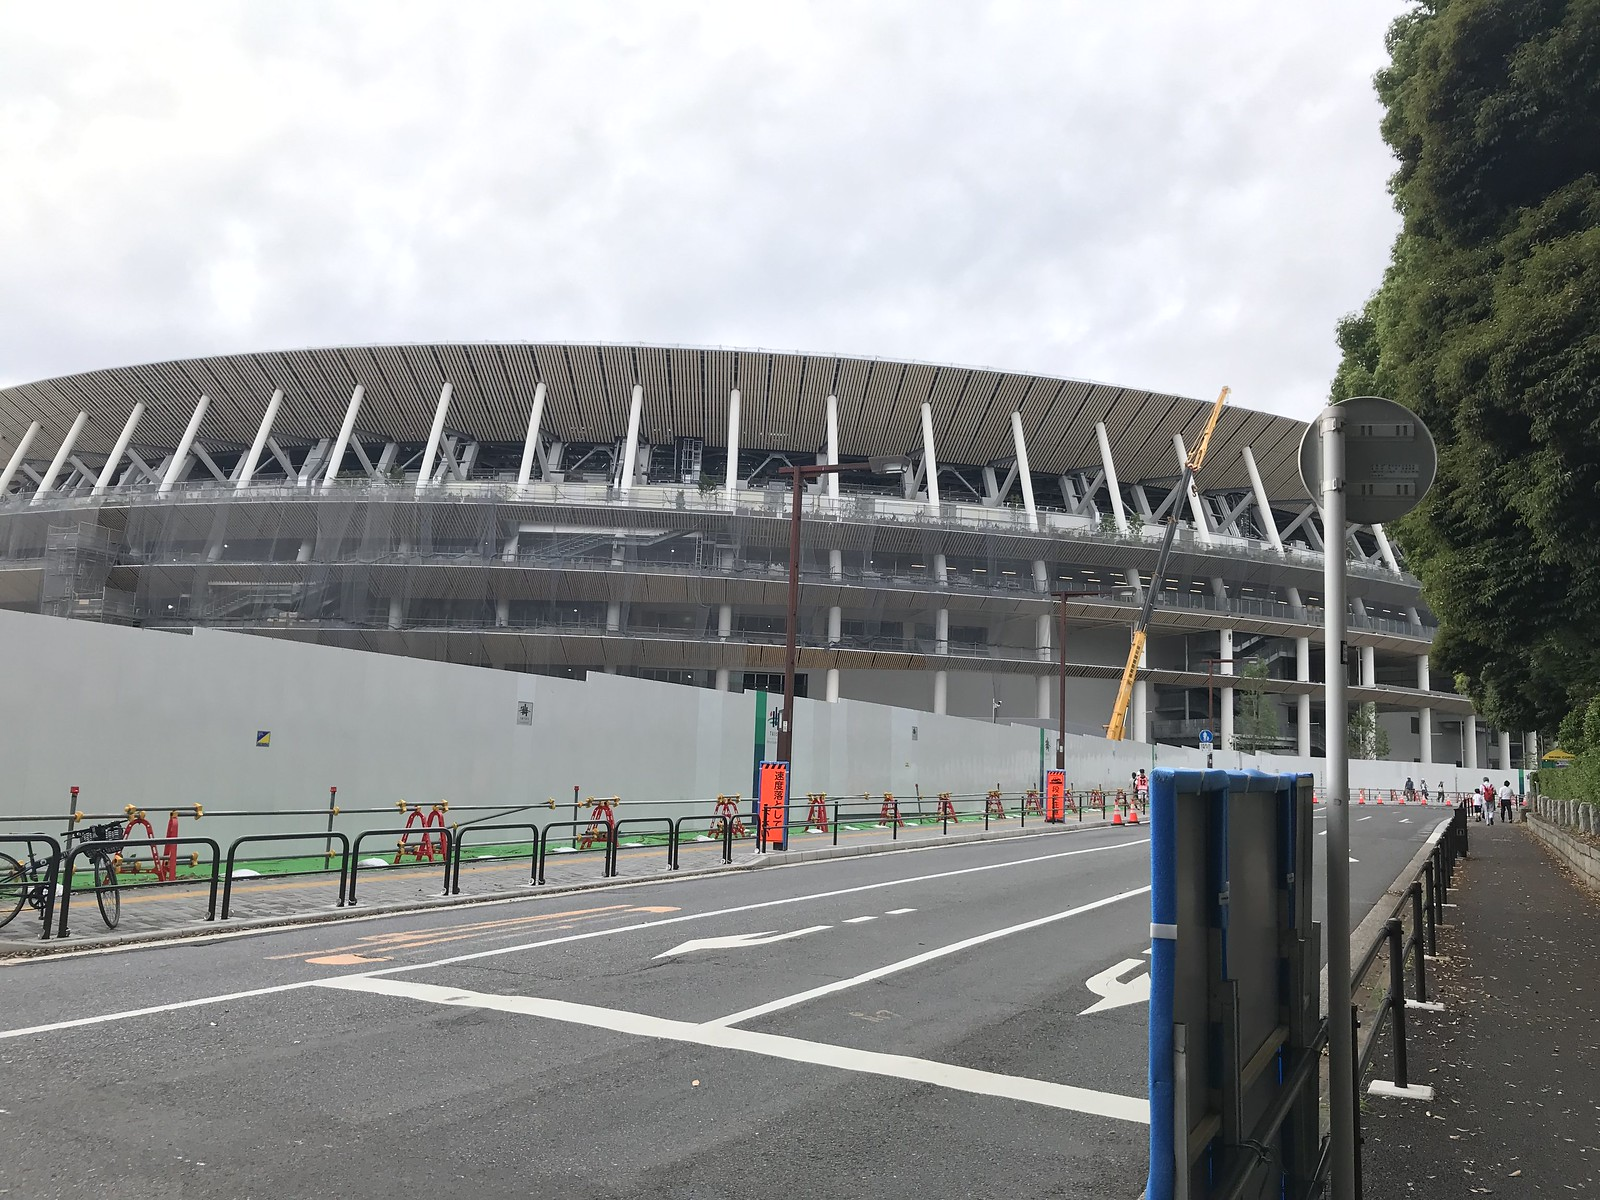 新国立競技場 New National Stadium